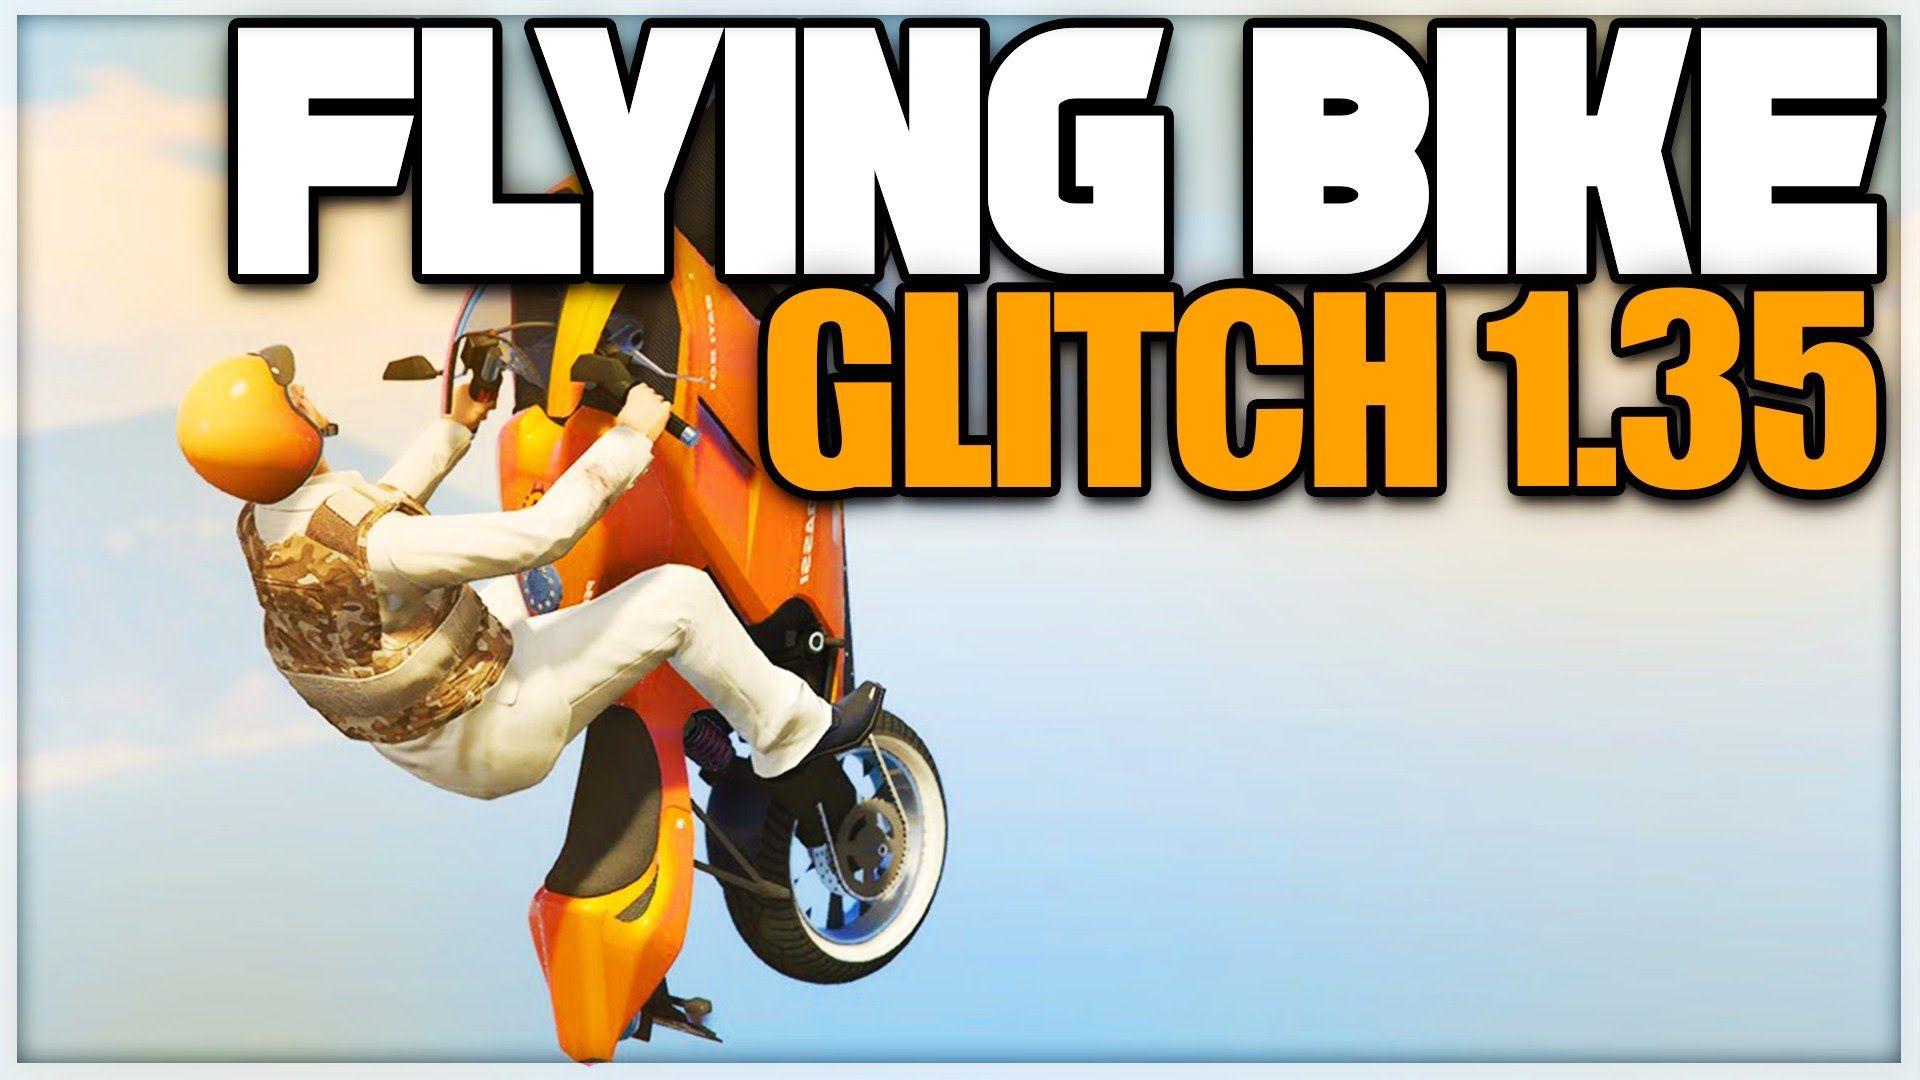 Gta 5 Online Flying Bike Glitch 1 35 Gta 5 Glitches In 2020